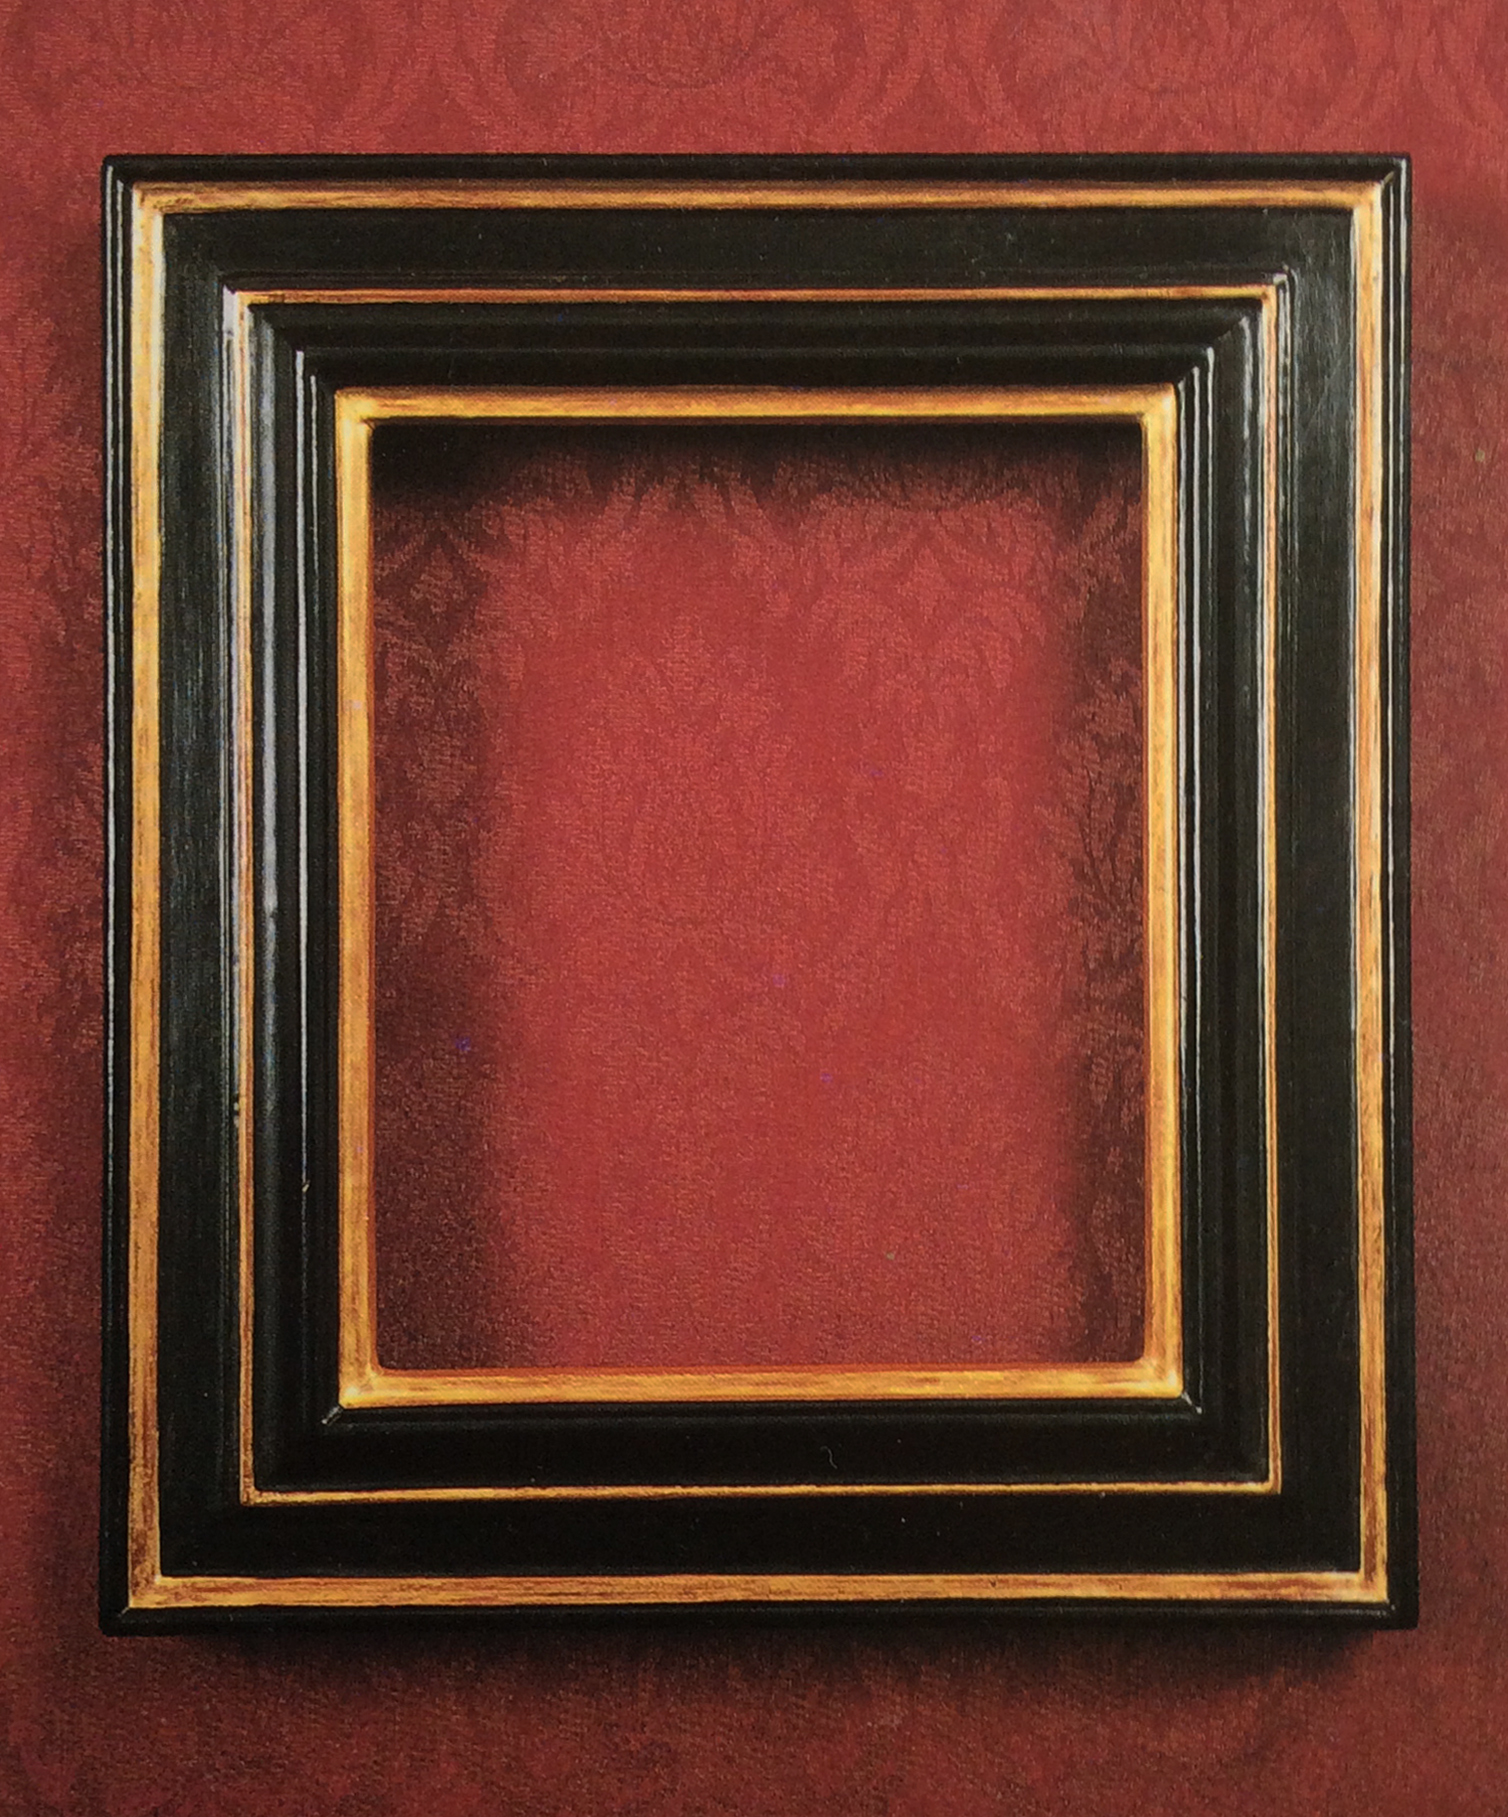 I've created all my own custom-made frames for each of my house and garden portraits. These were gessoed, ebonised, gilded, waxed and distressed to resemble European frames from the mid 17th century.